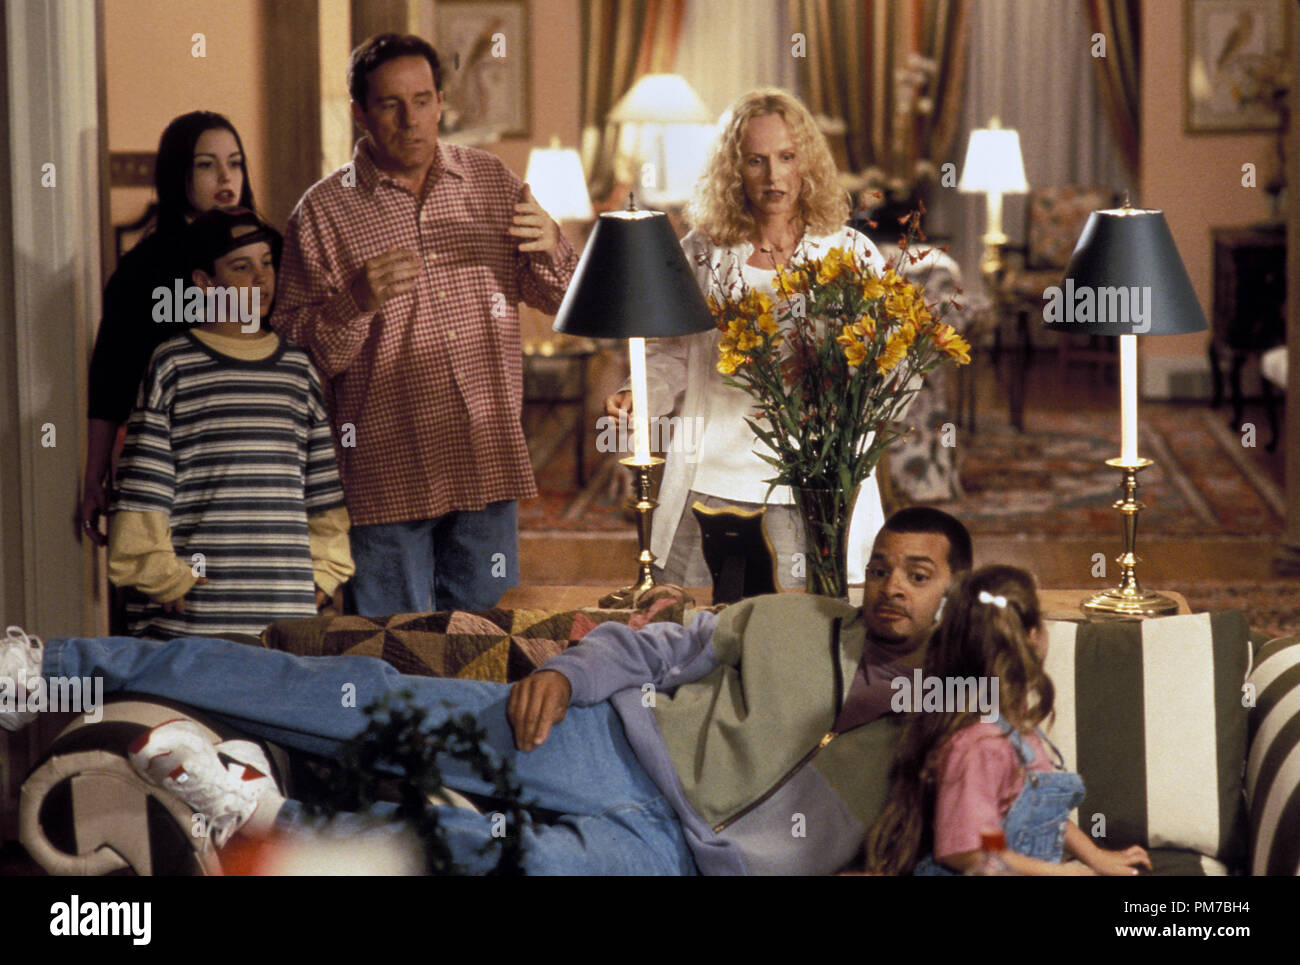 film-still-from-houseguest-sinbad-phil-hartman-kim-murphy-jeffrey-jones-kim-greist-chauncey-leopardi-talia-seider-1995-hollywood-pictures-photo-credit-marsha-blackburn-file-reference-31043316tha-for-editorial-use-only-all-rights-reserved-PM7BH4.jpg